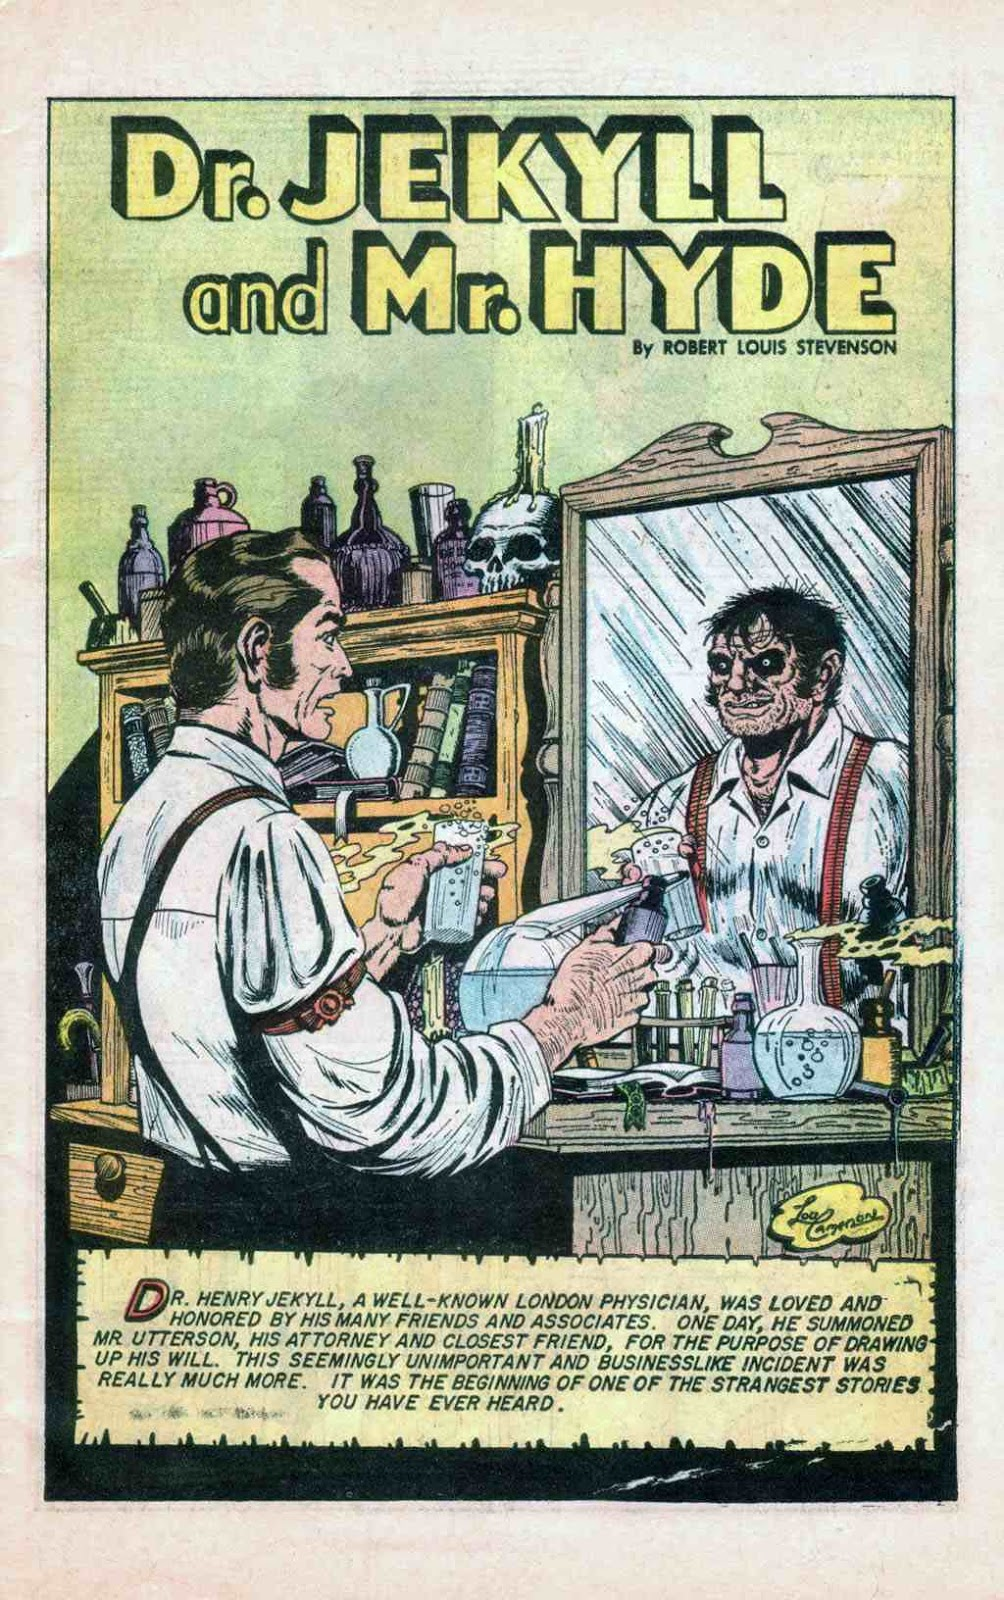 dr jekyll and mr hyde differences between movie and book 4 the strange case of dr jekyll and mr hyde undemonstrative at the best, and even his friendship seemed to be founded in a similar catholicity of good-nature.